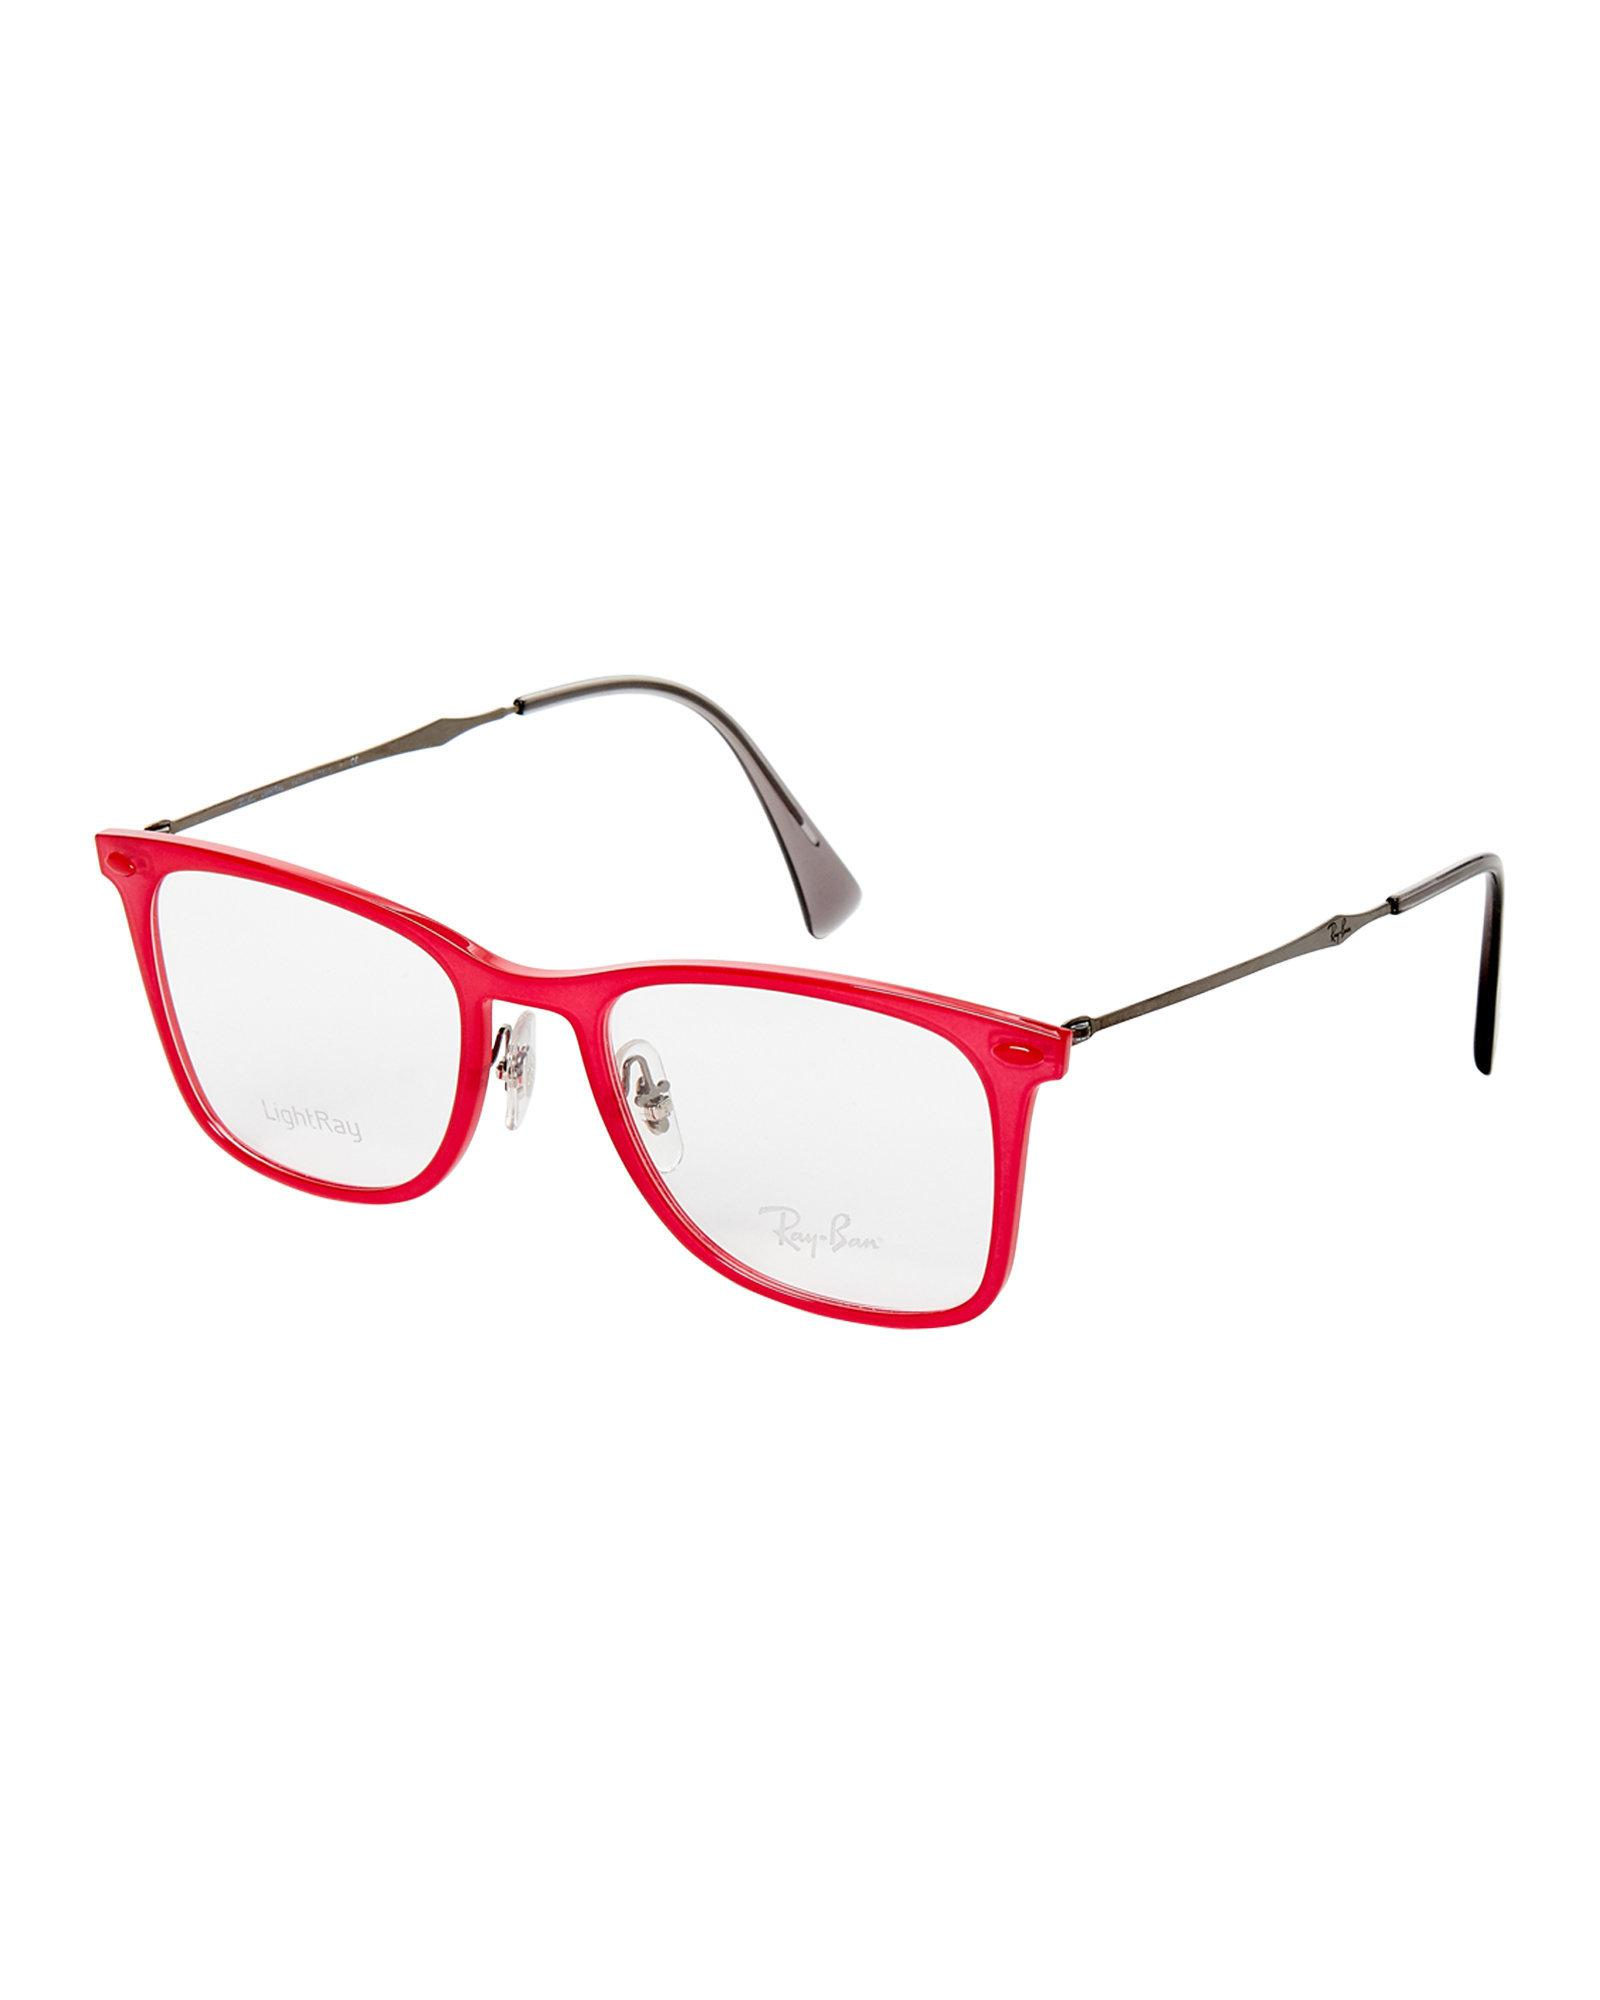 Lyst - Ray-Ban Rb7086 Red Lightray Square Optical Frames in Red